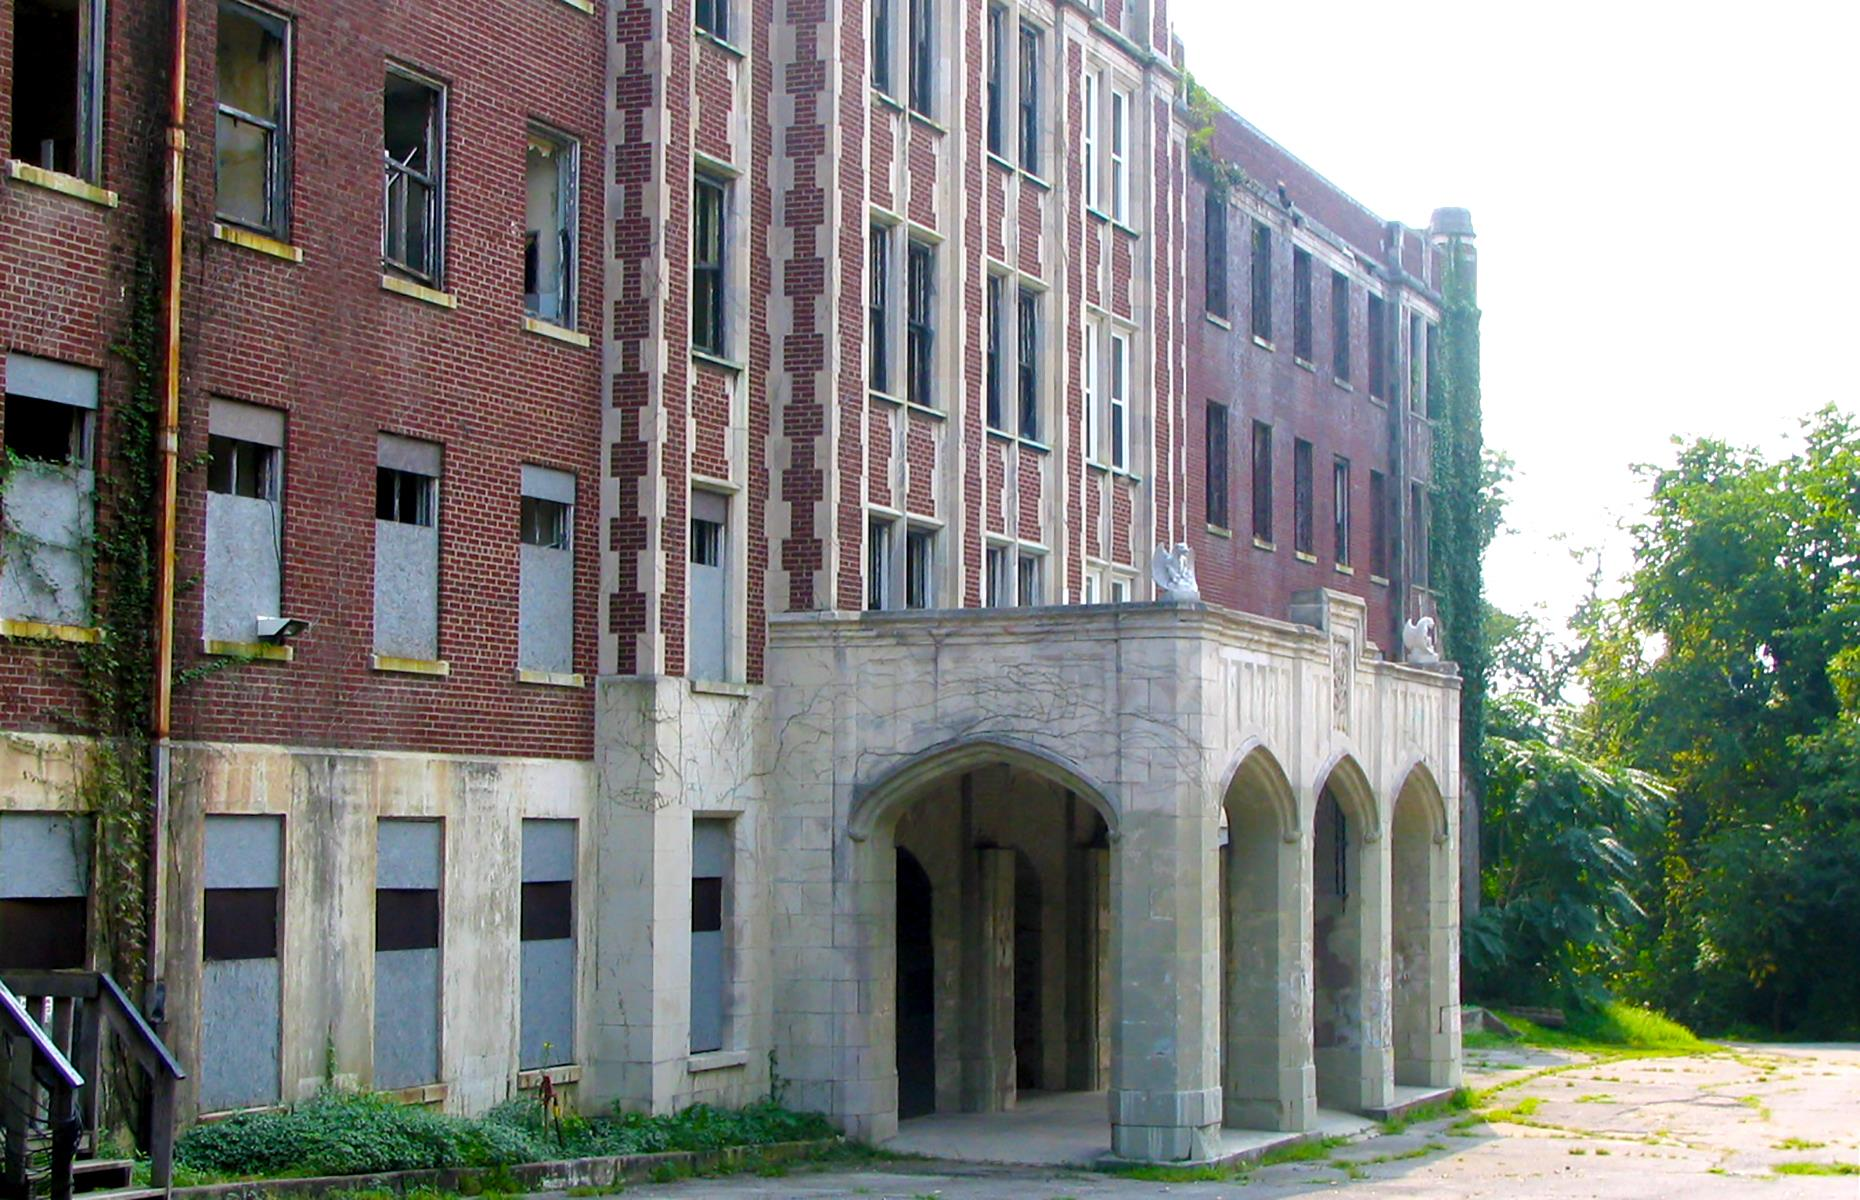 Slide 19 of 52: Construction of the mansion-like Waverly Hills Sanatorium was completed in the 1920s for the Board of Tuberculosis Hospital. But, following the discovery of antibiotics that could treat TB, the sanatorium closed in 1961. It had a brief stint as a care facility for the elderly before being abandoned entirely by the 1980s. For years it stood deserted, but today guided tours and ghost hunts take brave visitors through the moldering corridors, tattered staircases and long-empty wards – reservations are required.